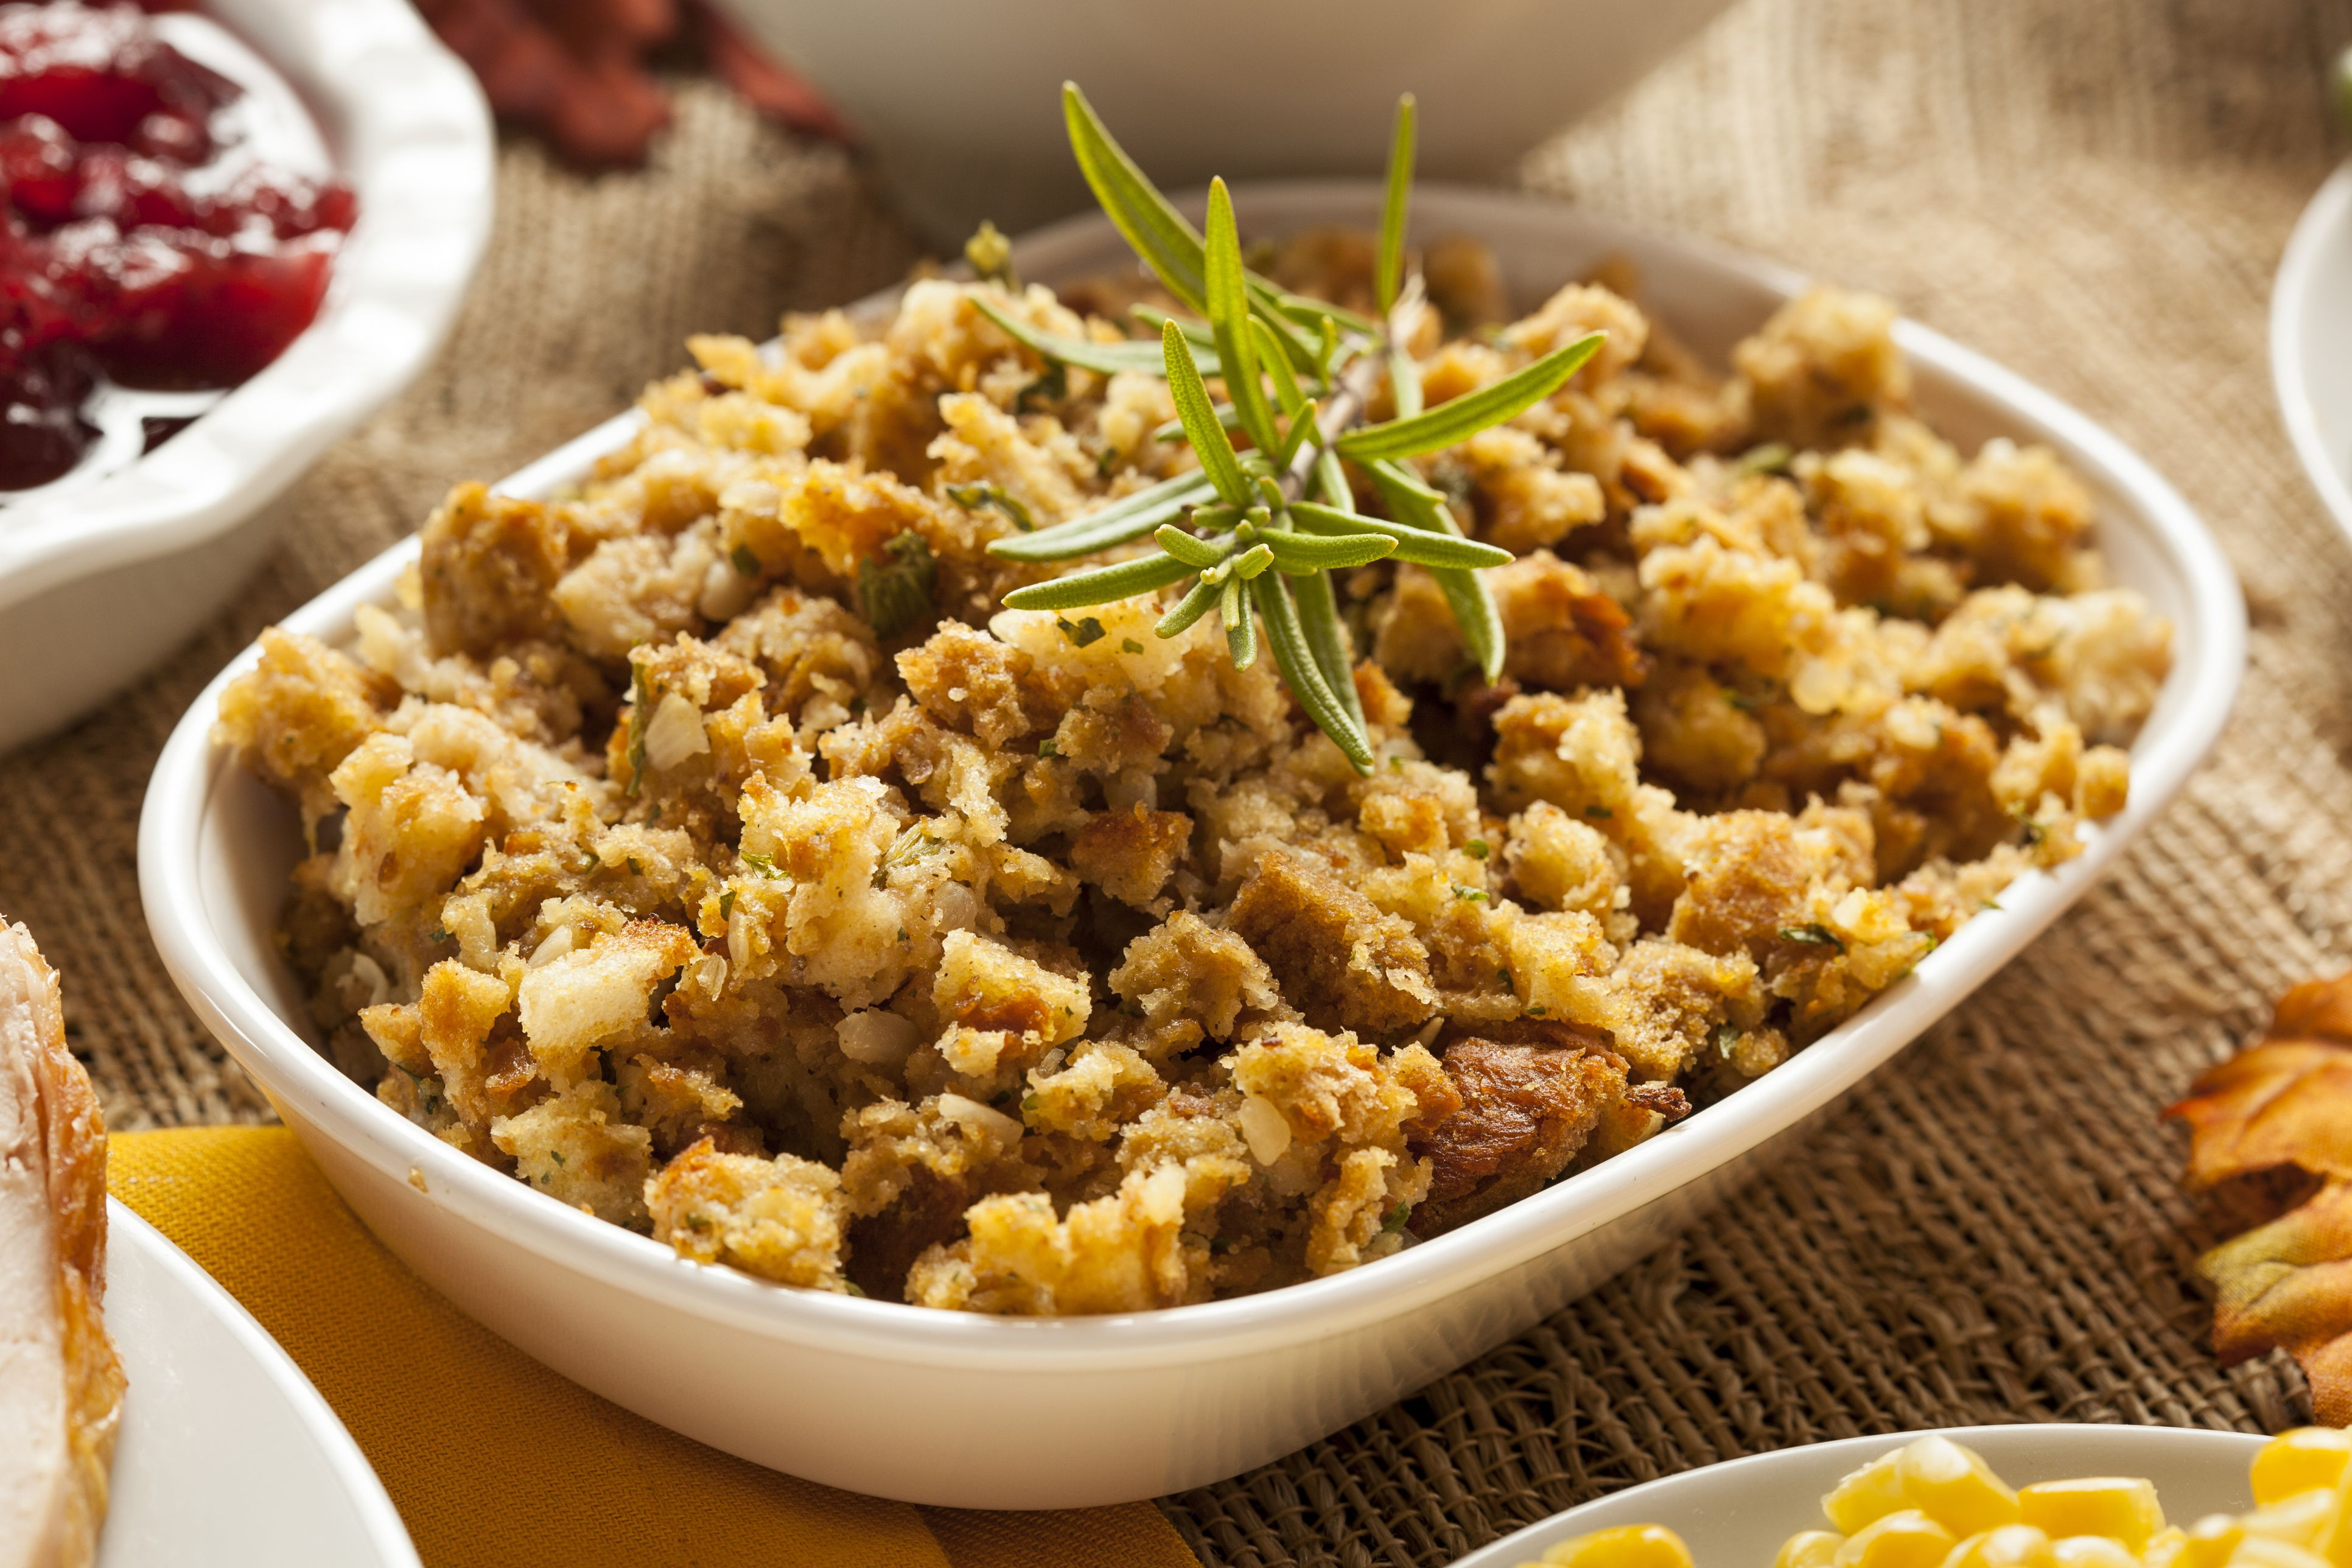 You might be left wondering where to put all of your belongings or how to make the space livable. Turkey Stuffing Recipe - Traditional Bread Stuffing with